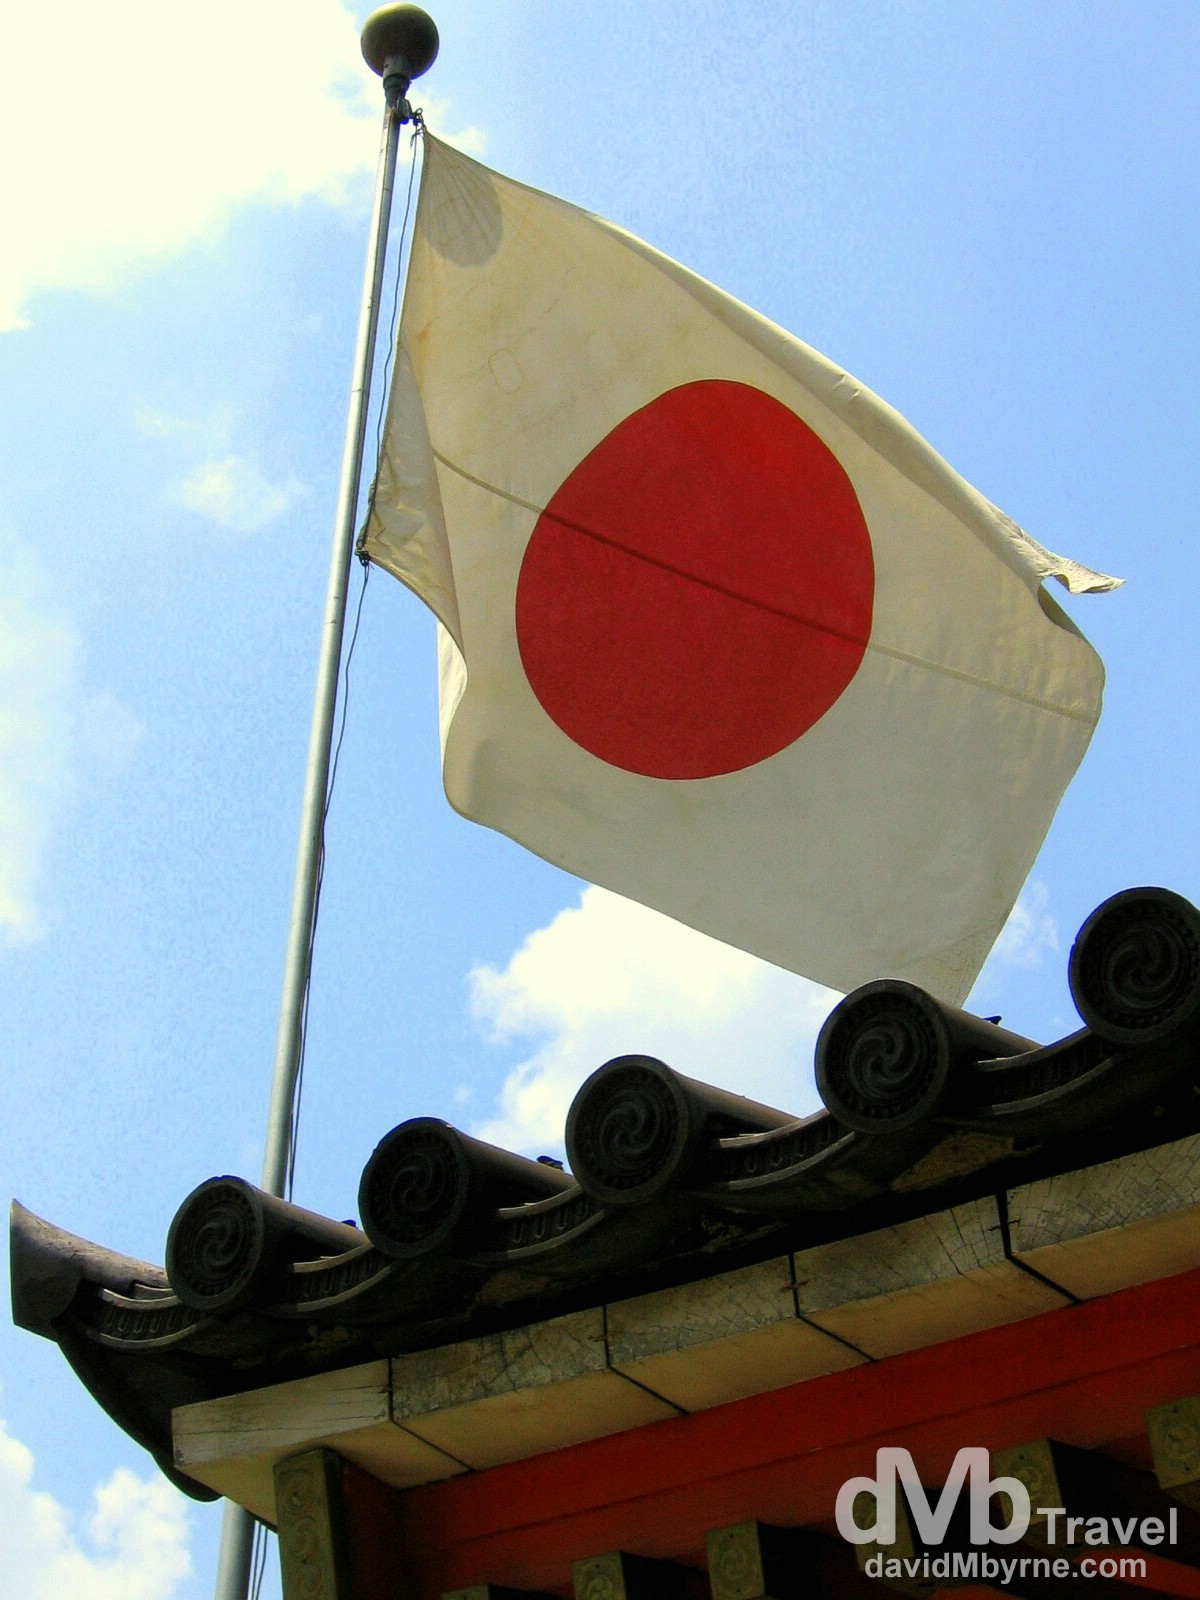 The Japanese flag flies over the entrance to the Yasaka Jinja Shrine in Kyoto, Honshu, Japan. July 18th, 2005.